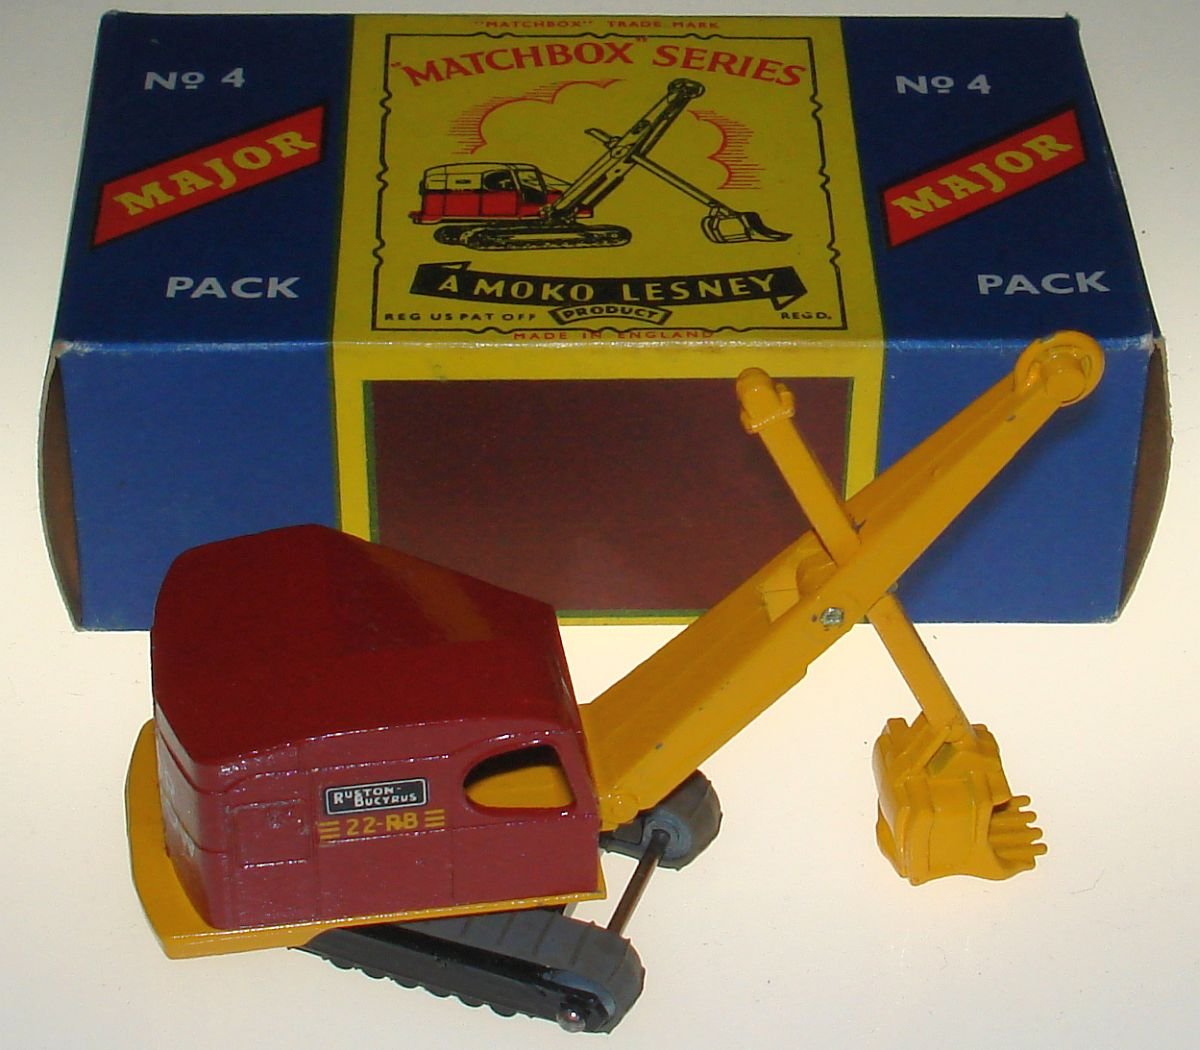 Vintage Matchbox Moko Lesney Grey Wheel Ruston Bucyrus Steam Shovel M4 Box